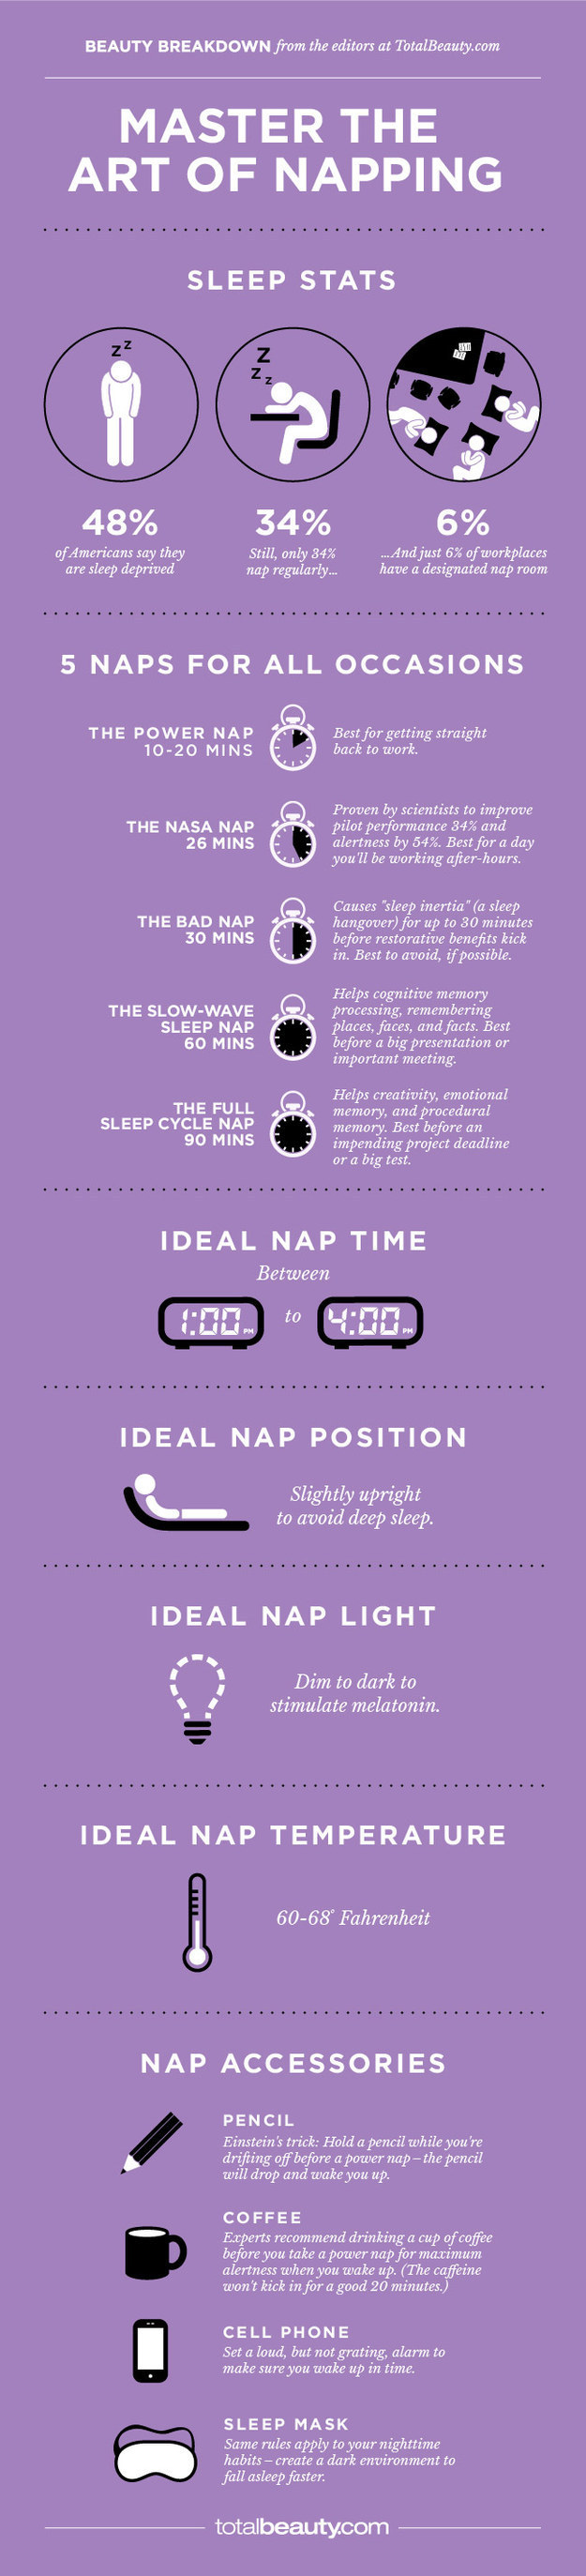 But if you have serious trouble falling asleep at bedtime, napping too late in the day may make it even harder to doze off at night. From TotalBeauty.